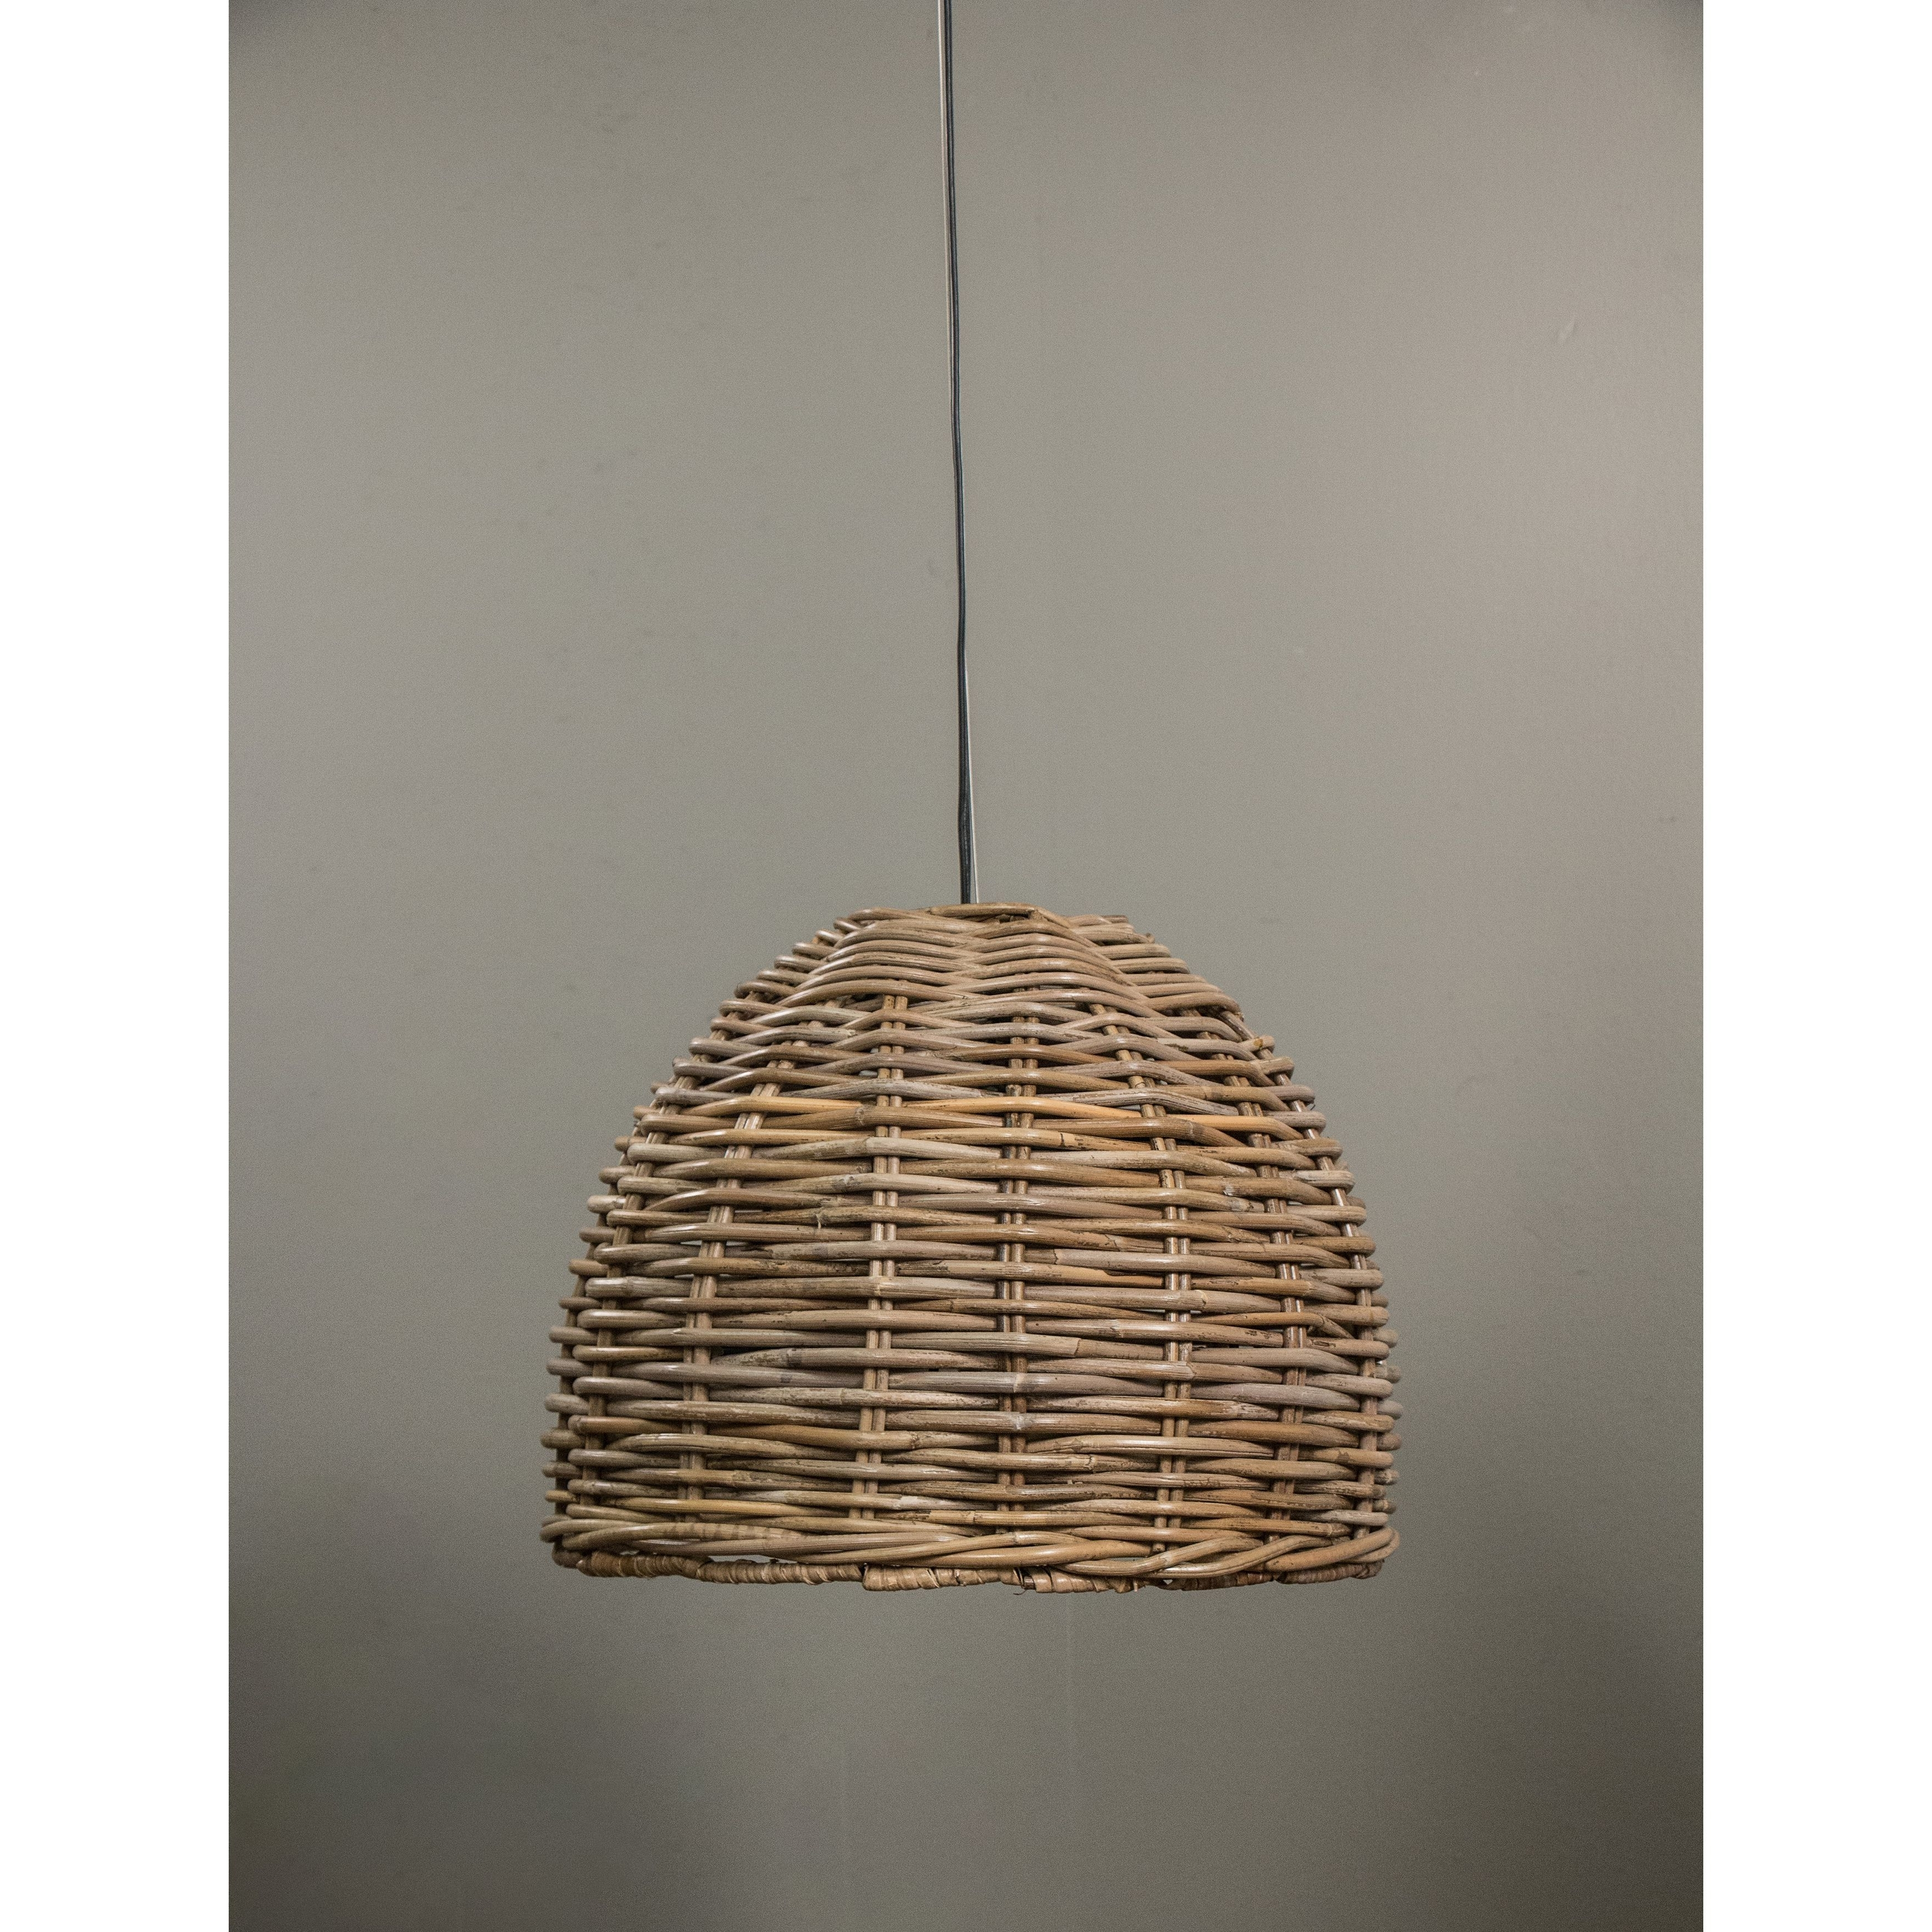 Our Dawson Hanging Lamp Is Made With The Natural Material, Rattan Intended For Popular Outdoor Hanging Wicker Lights (View 10 of 20)